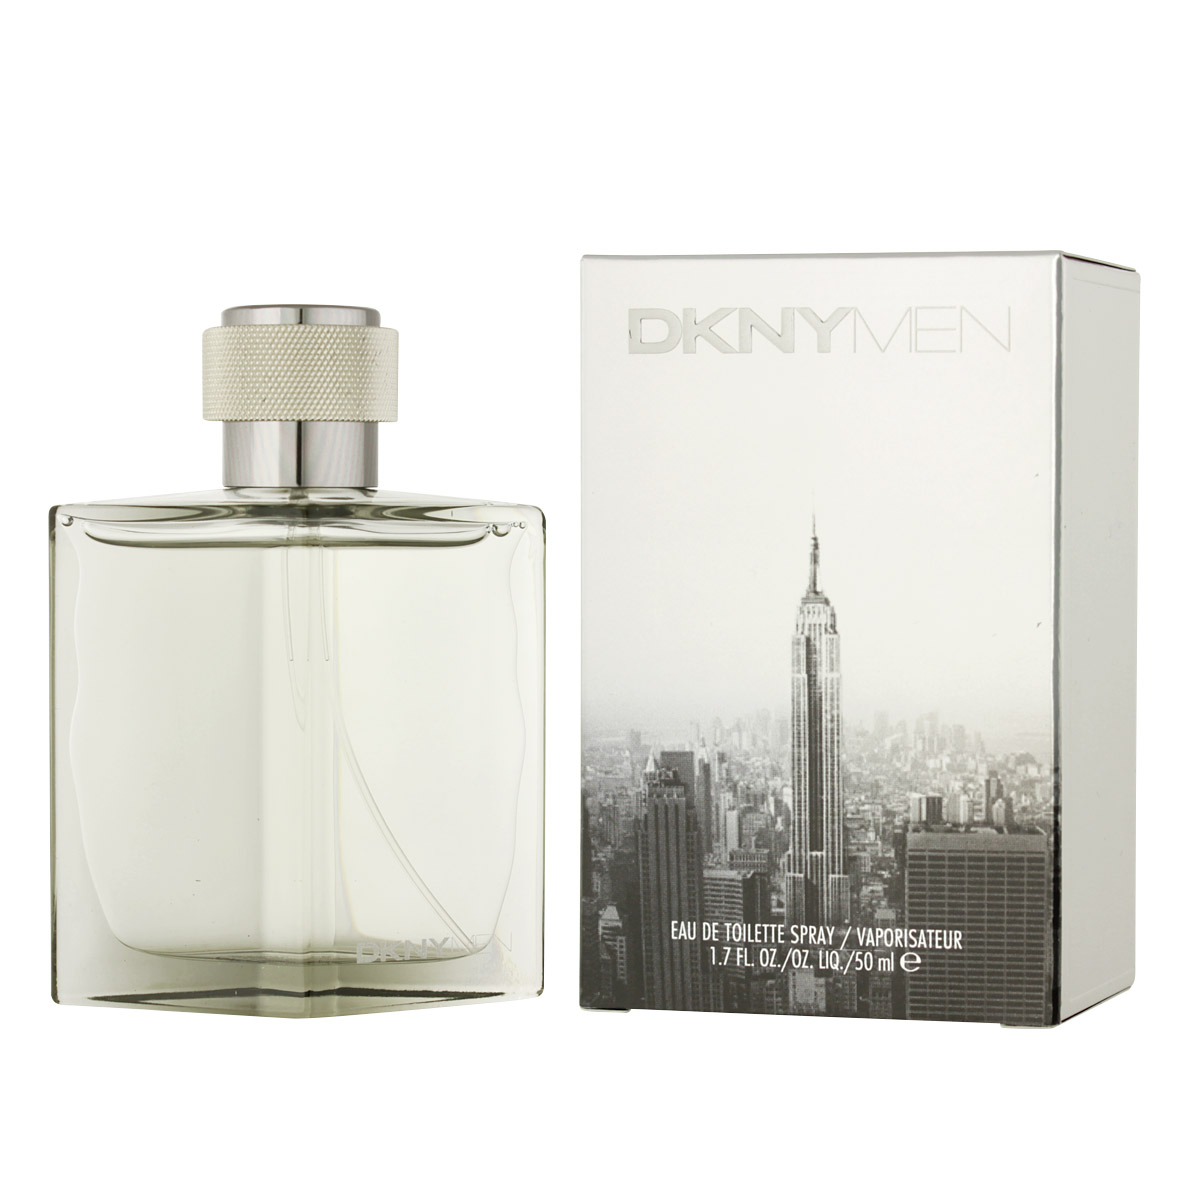 DKNY Donna Karan Men 2009 EDT 50 ml M